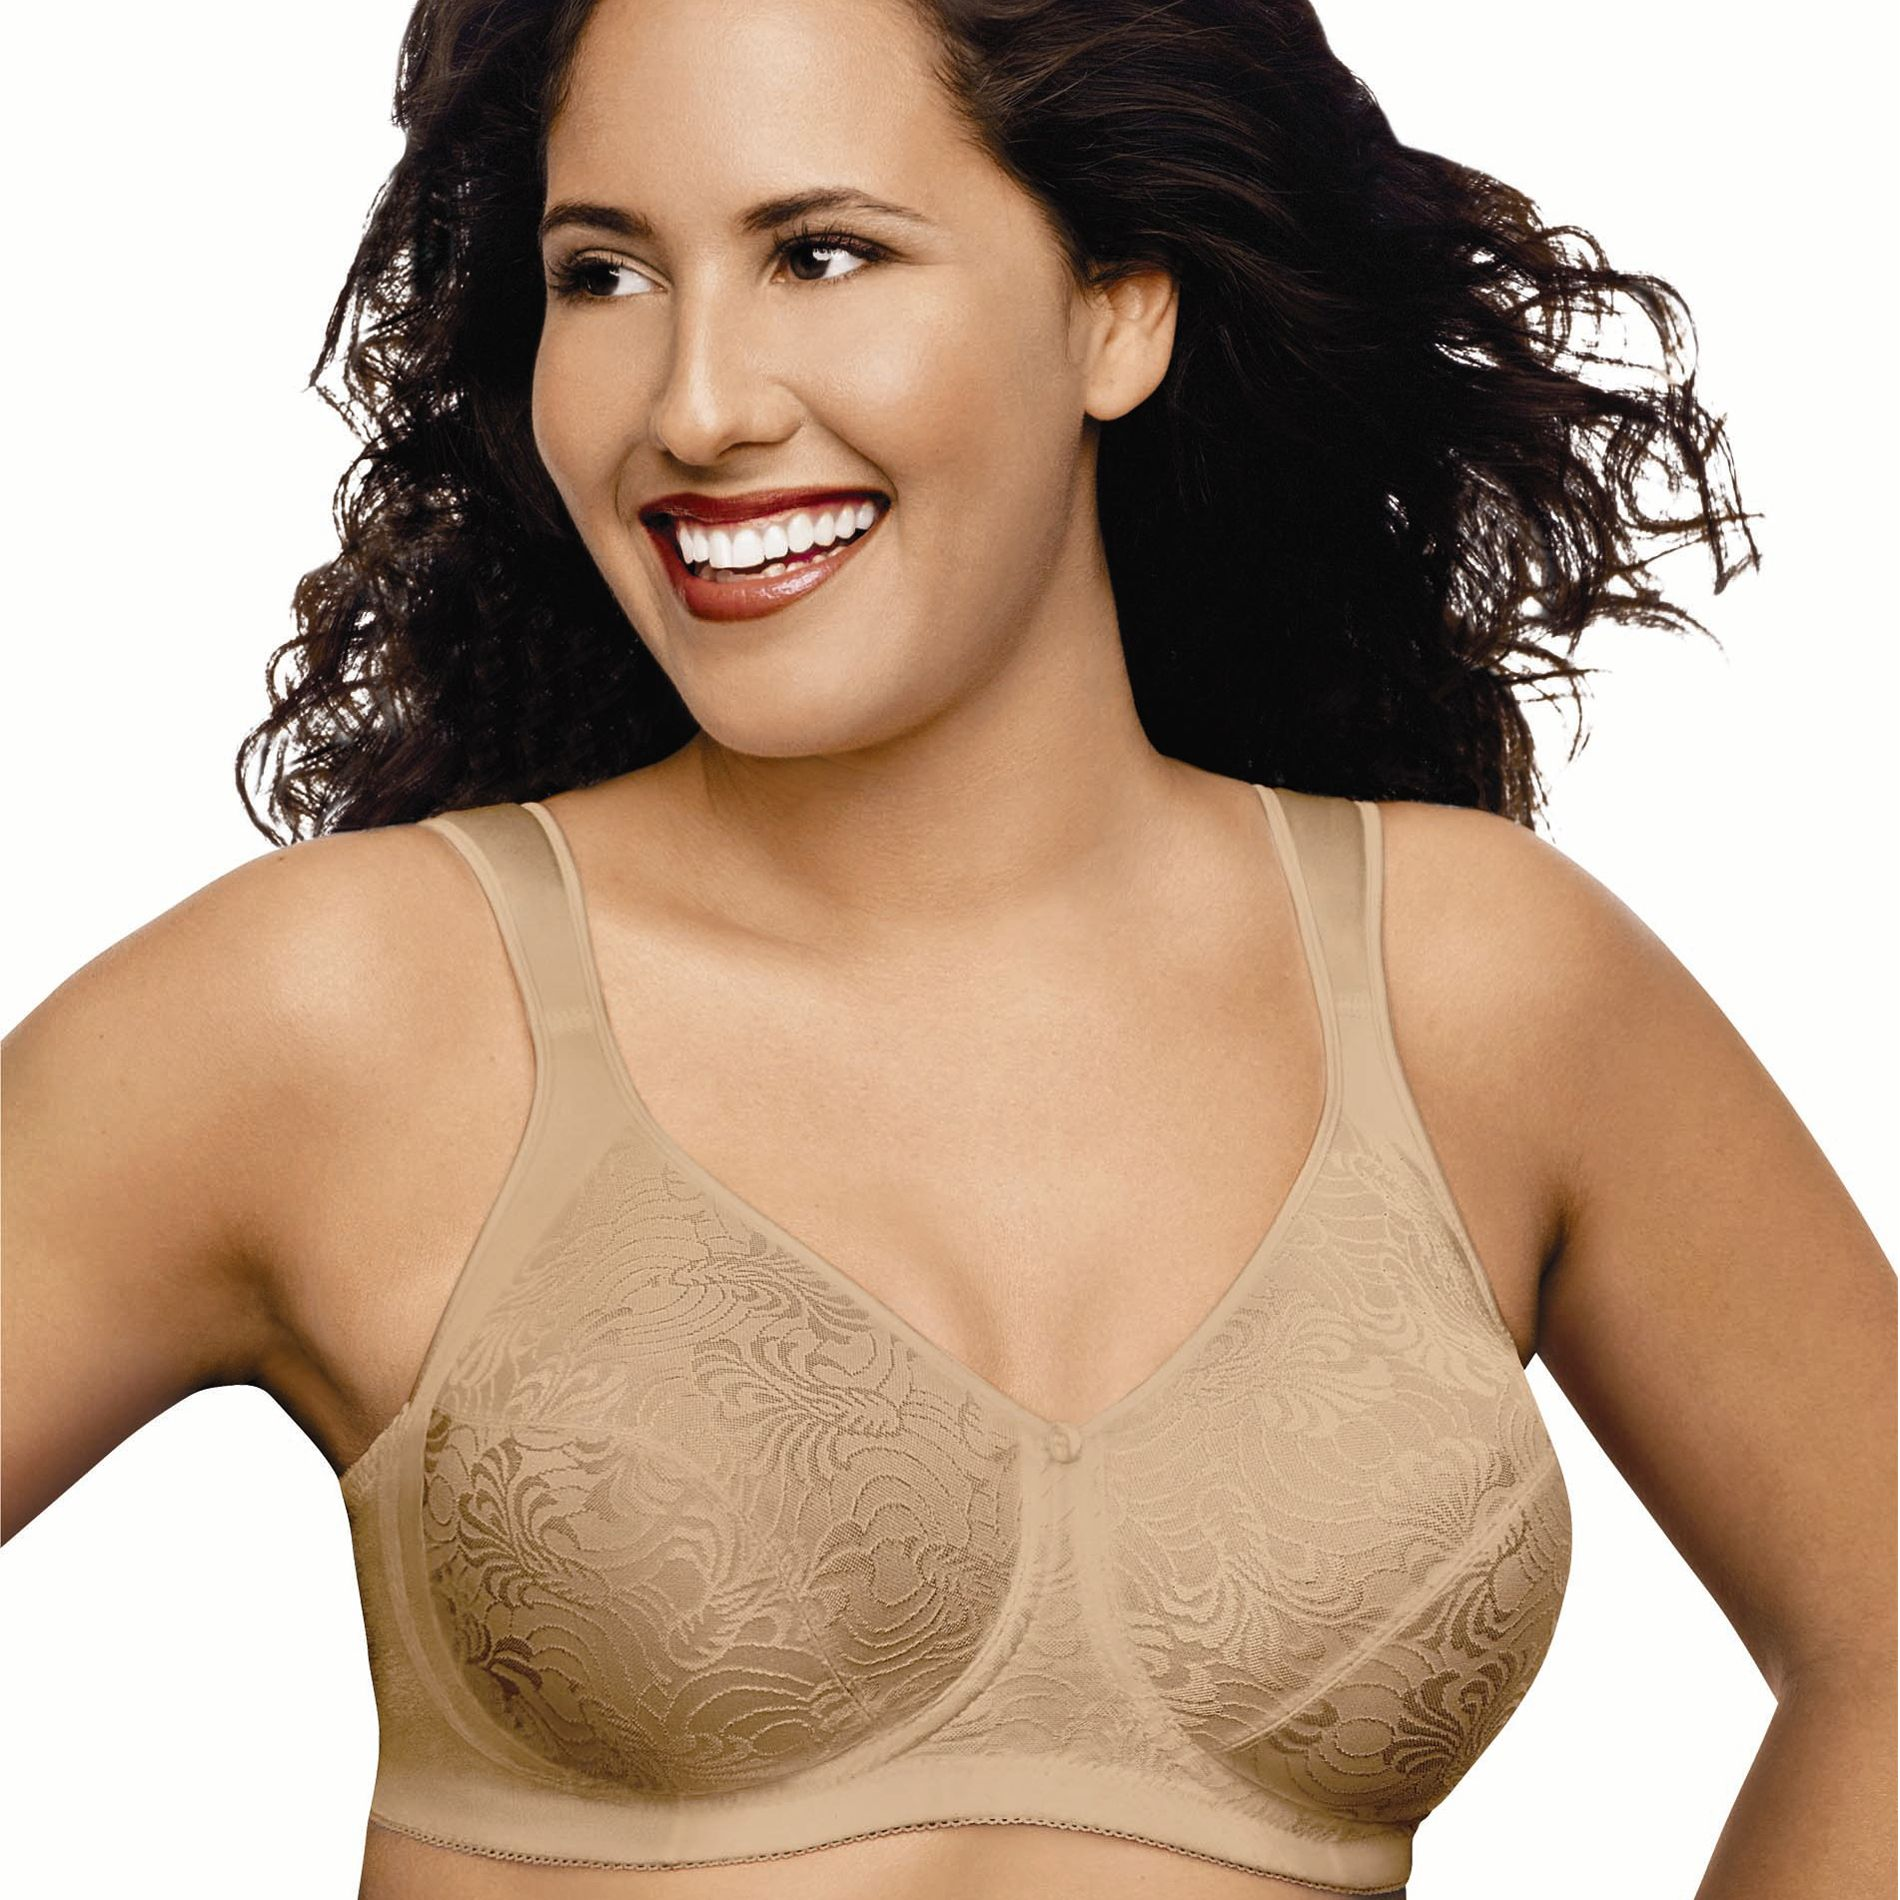 Just My Size Women's Gel Cushion Strap Bra #1105 at Kmart.com